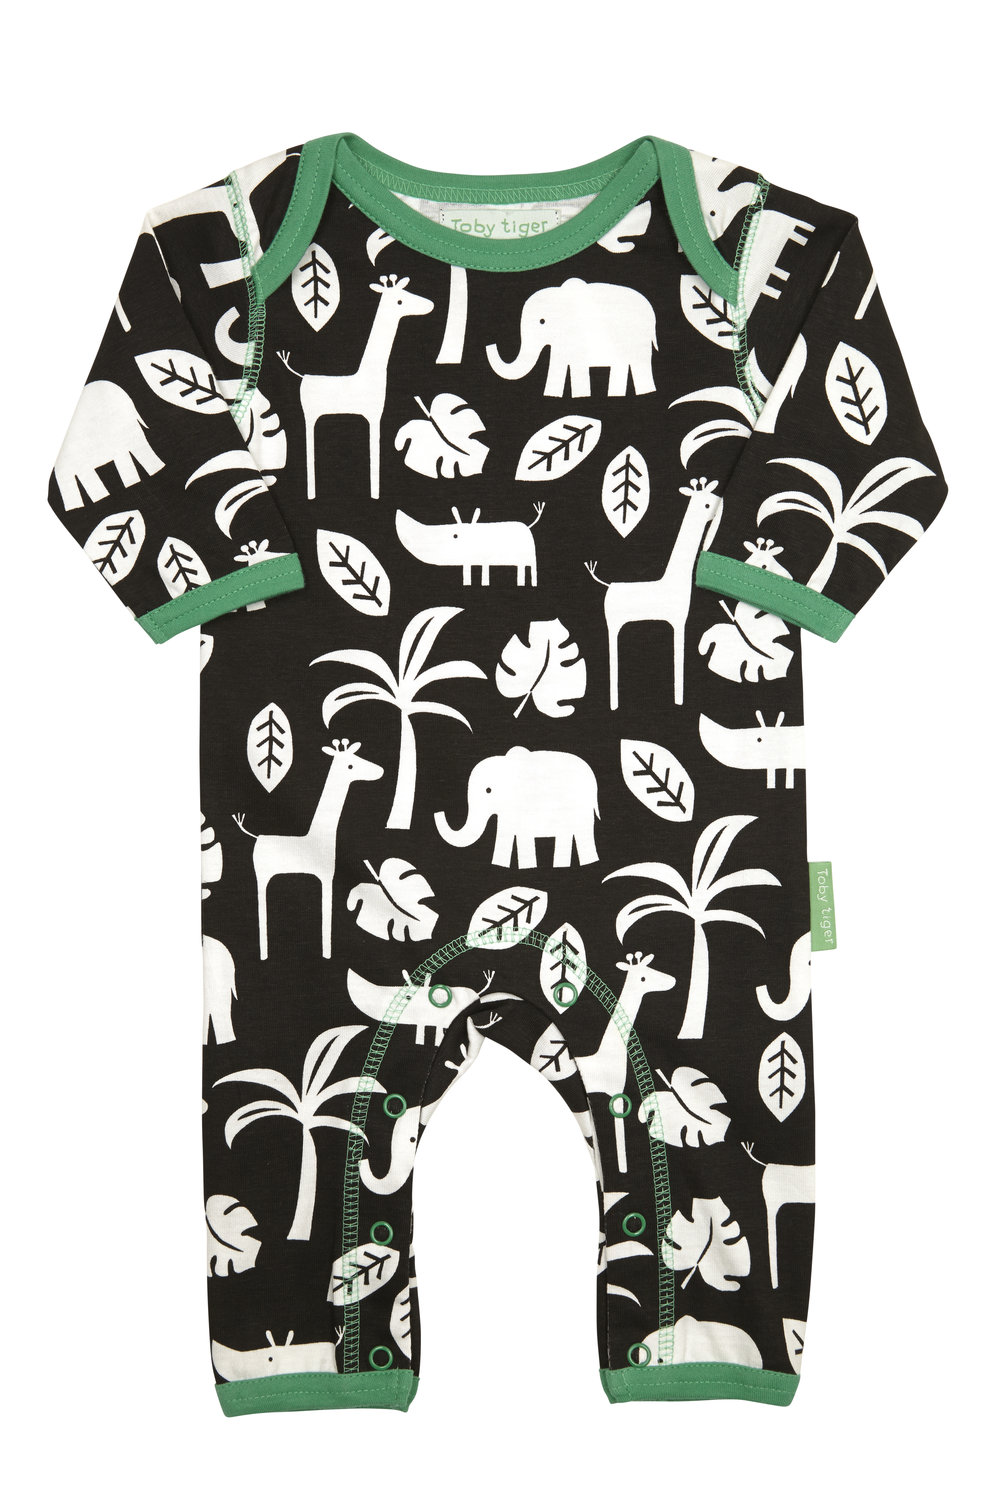 Toby Tiger animals romper suit